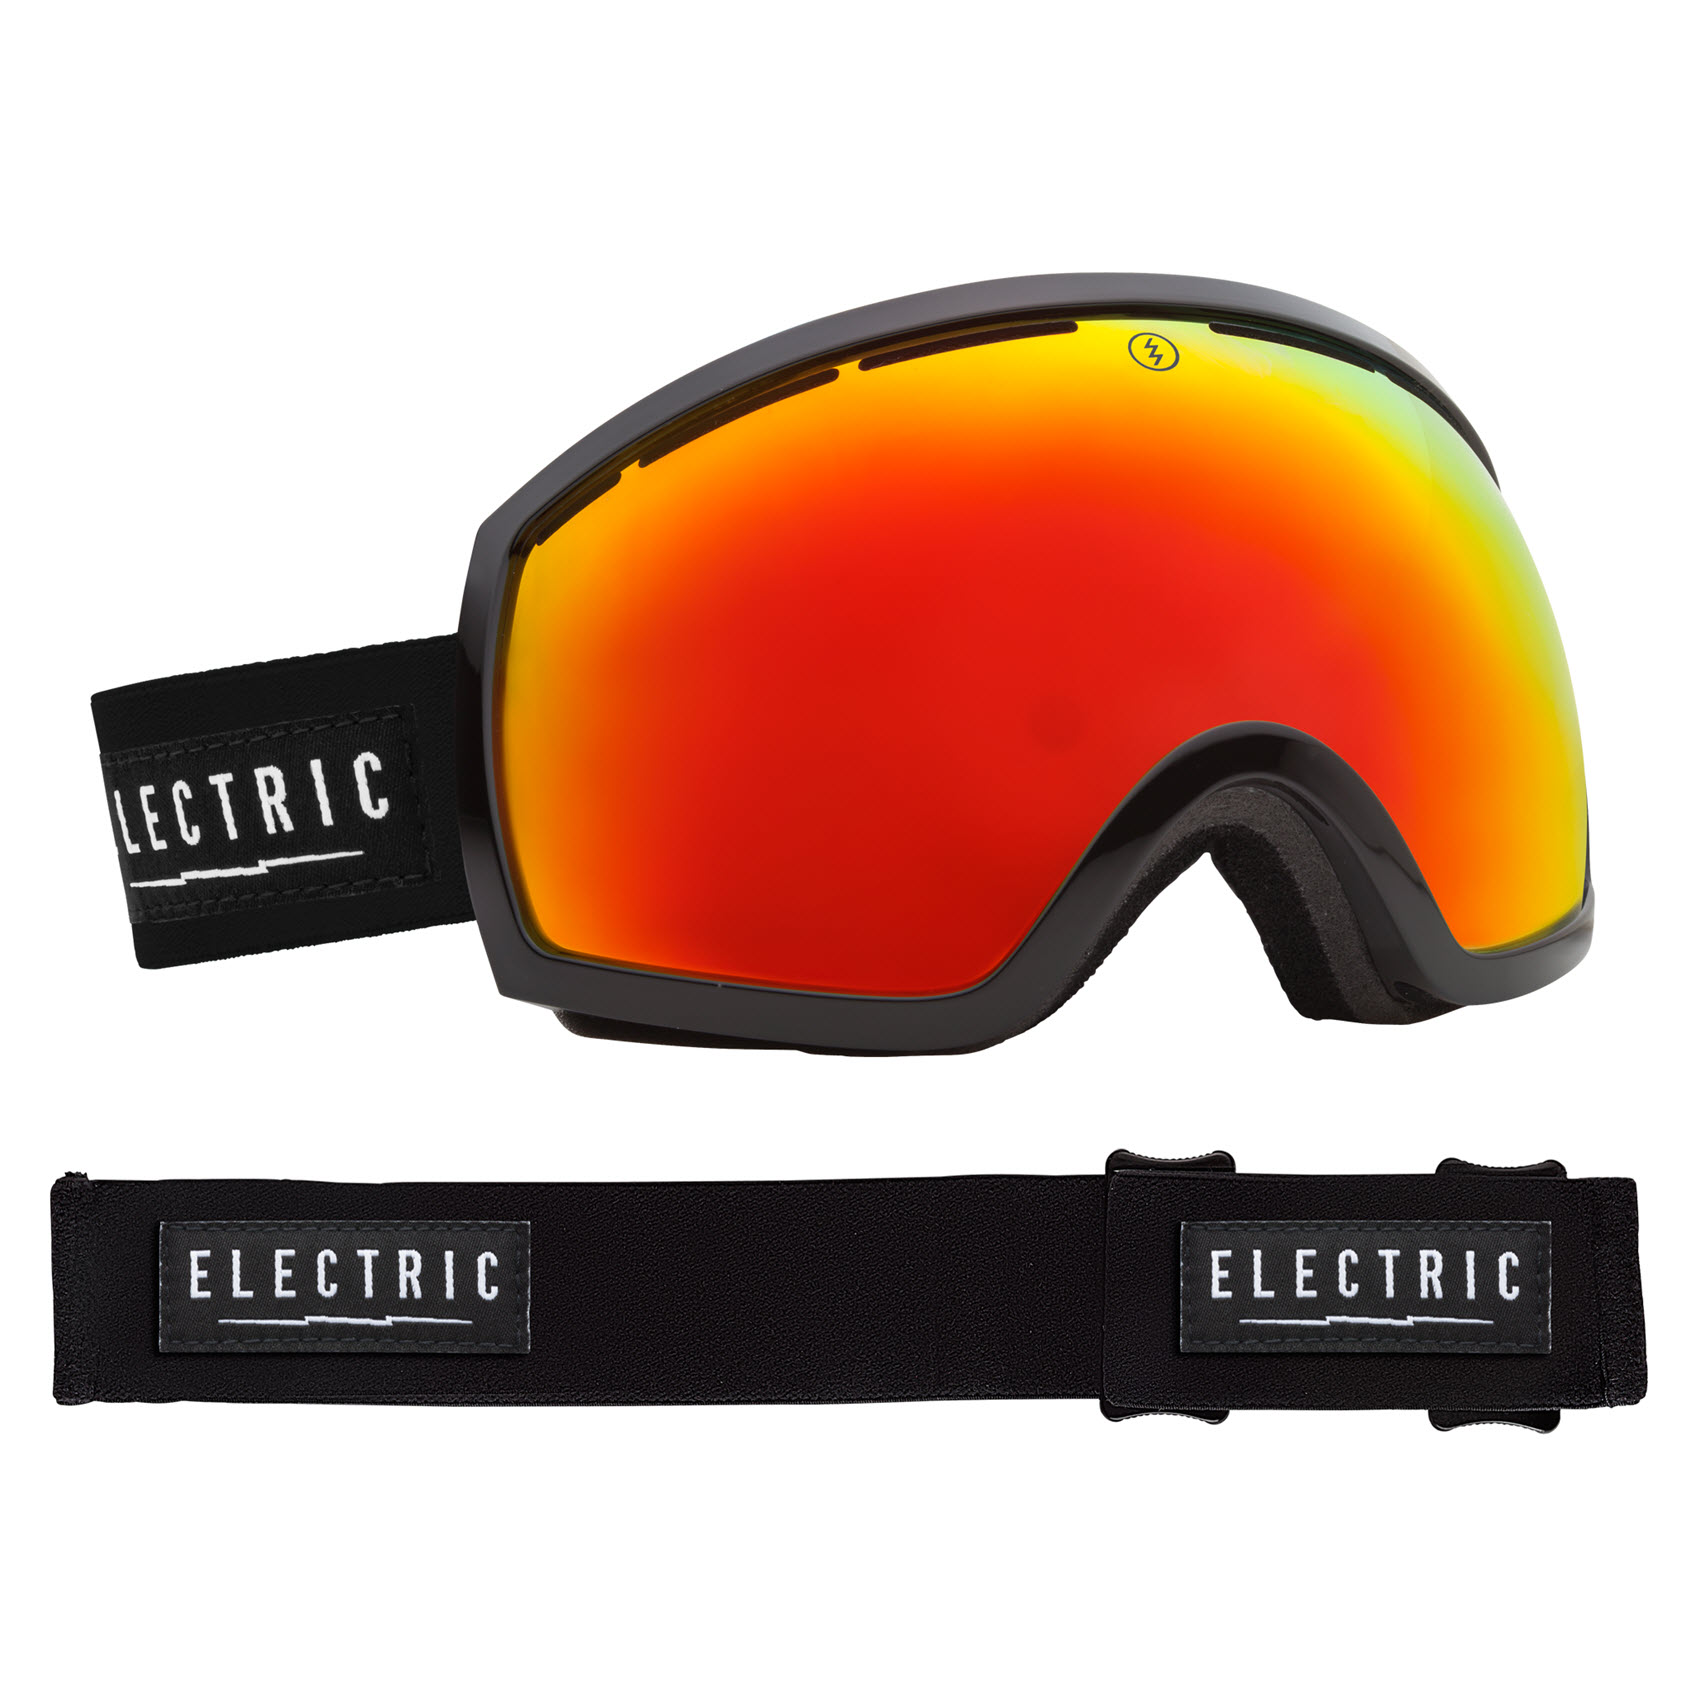 Electric EG2 Snowboard Goggles 2015